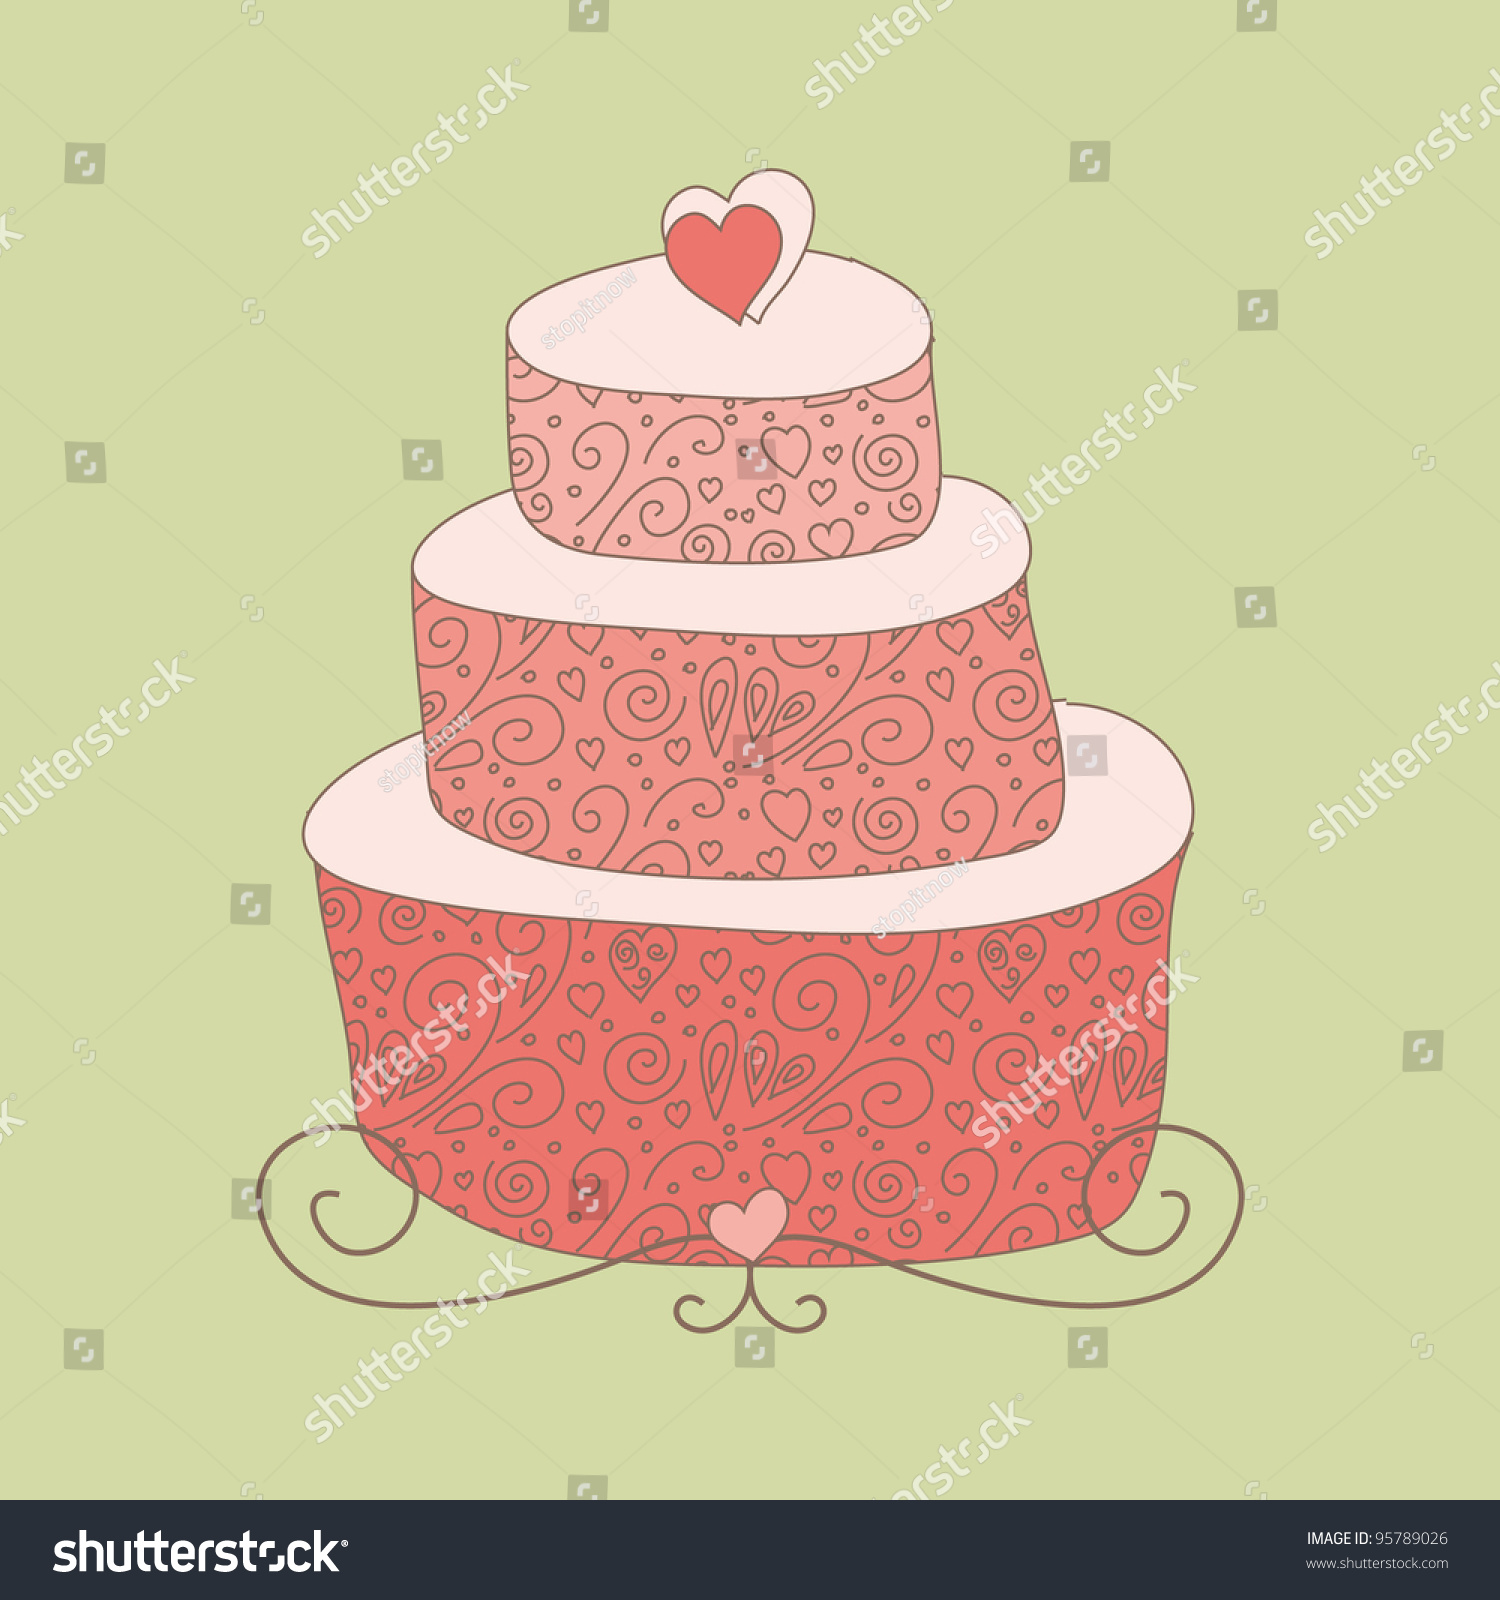 Cute Wedding Cake Hearts On Top Stock Vector (Royalty Free) 95789026 ...